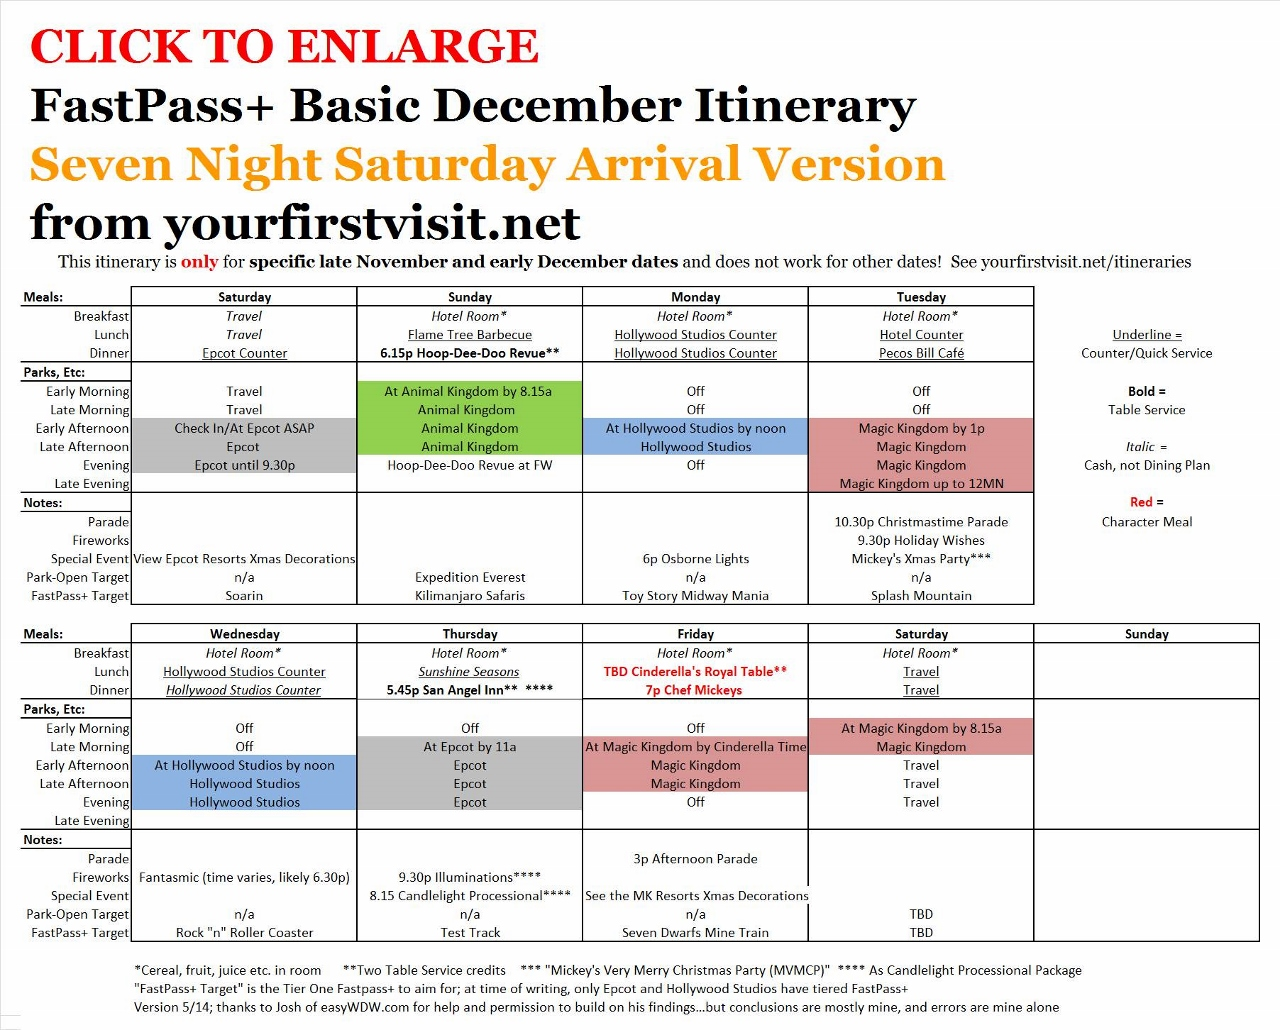 Disney World Seven Night Saturday Arrival Variant of Basic December Itinerary from yourfirtsvisit.net